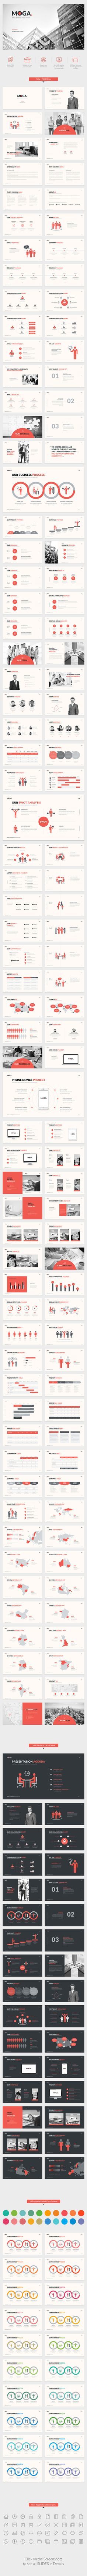 MOGA. - Small Business Presentation PowerPoint Template  • Only available here ➝ http://graphicriver.net/item/moga-small-business-presentation-powerpoint-template/16822290?ref=pxcr